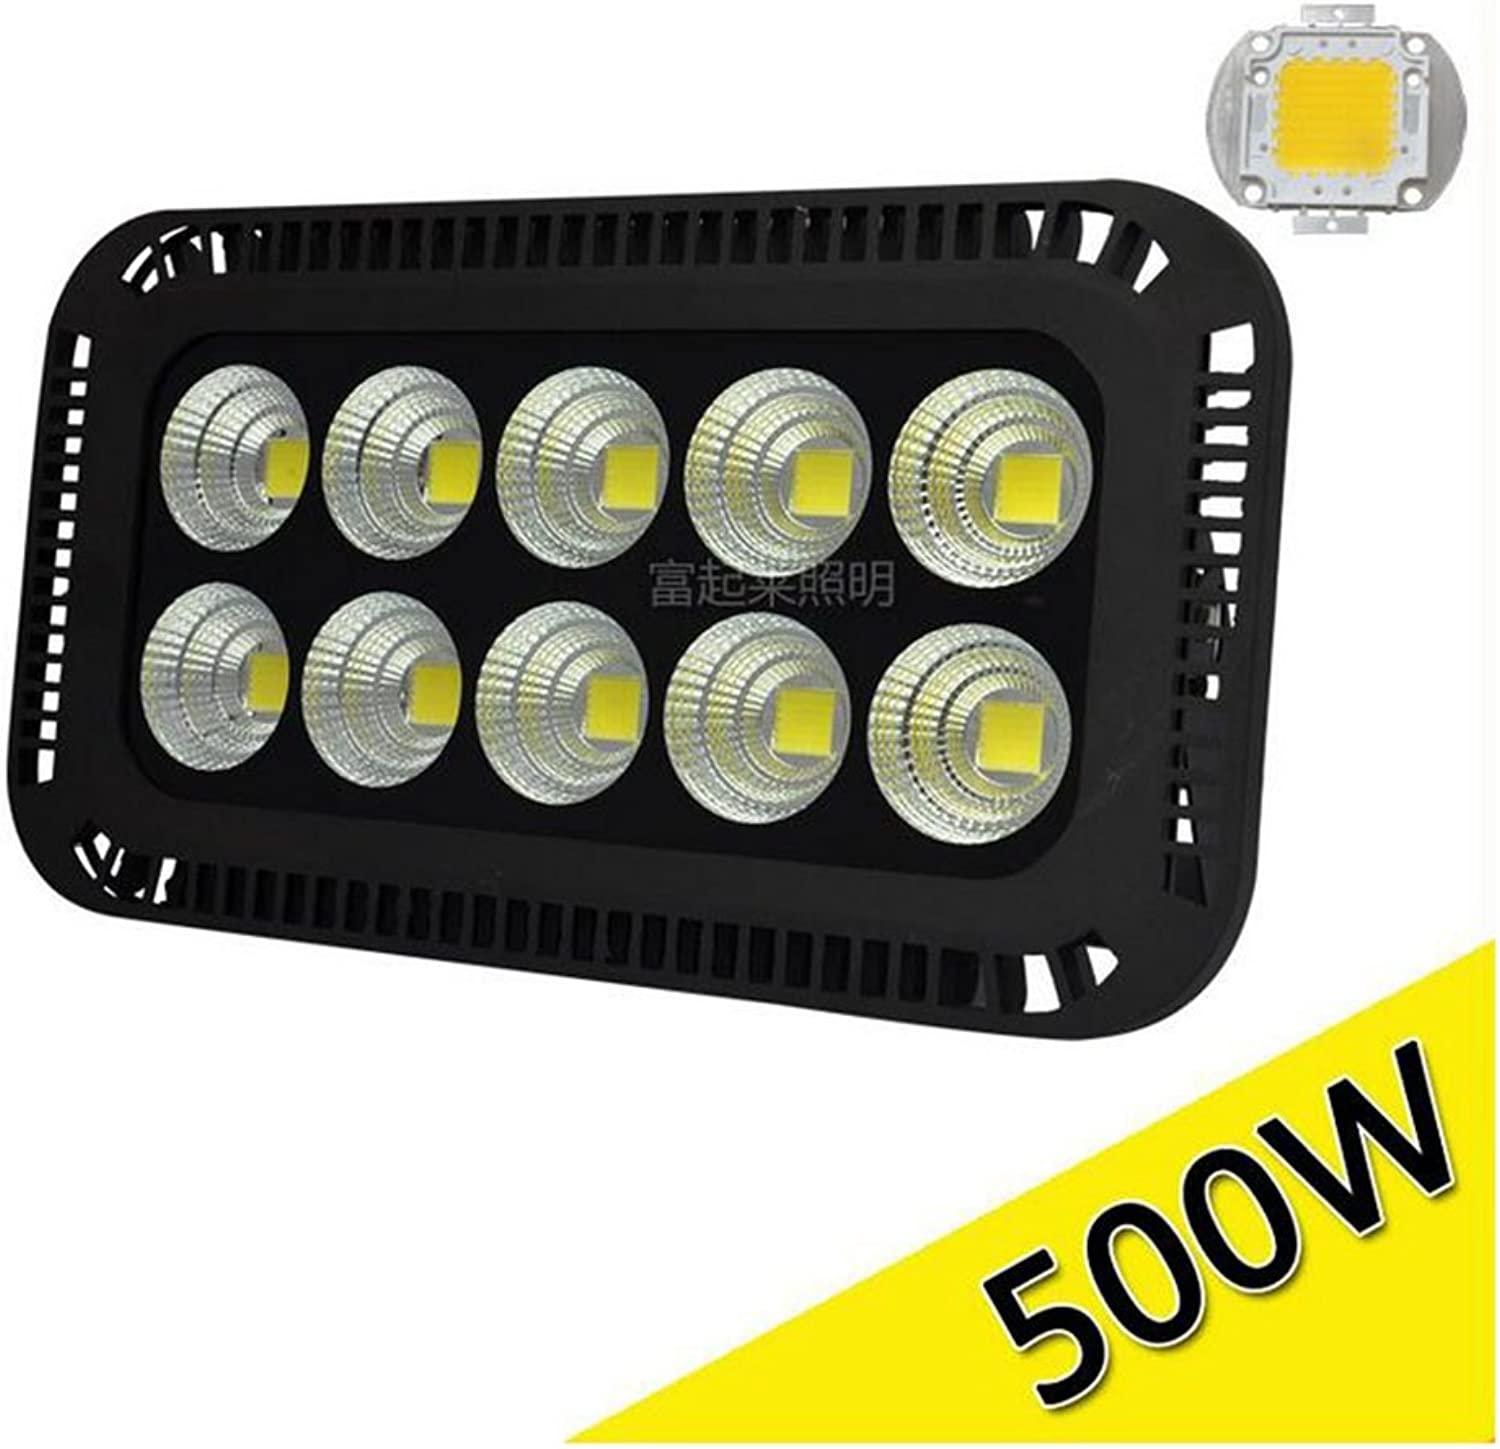 500W LED Flood Light, Searchlight ,Tunnel Light,High Power Outdoor Spotlight, Waterproof, AC 220V, Security Lights (color   6000K (White), Wattage   500W)